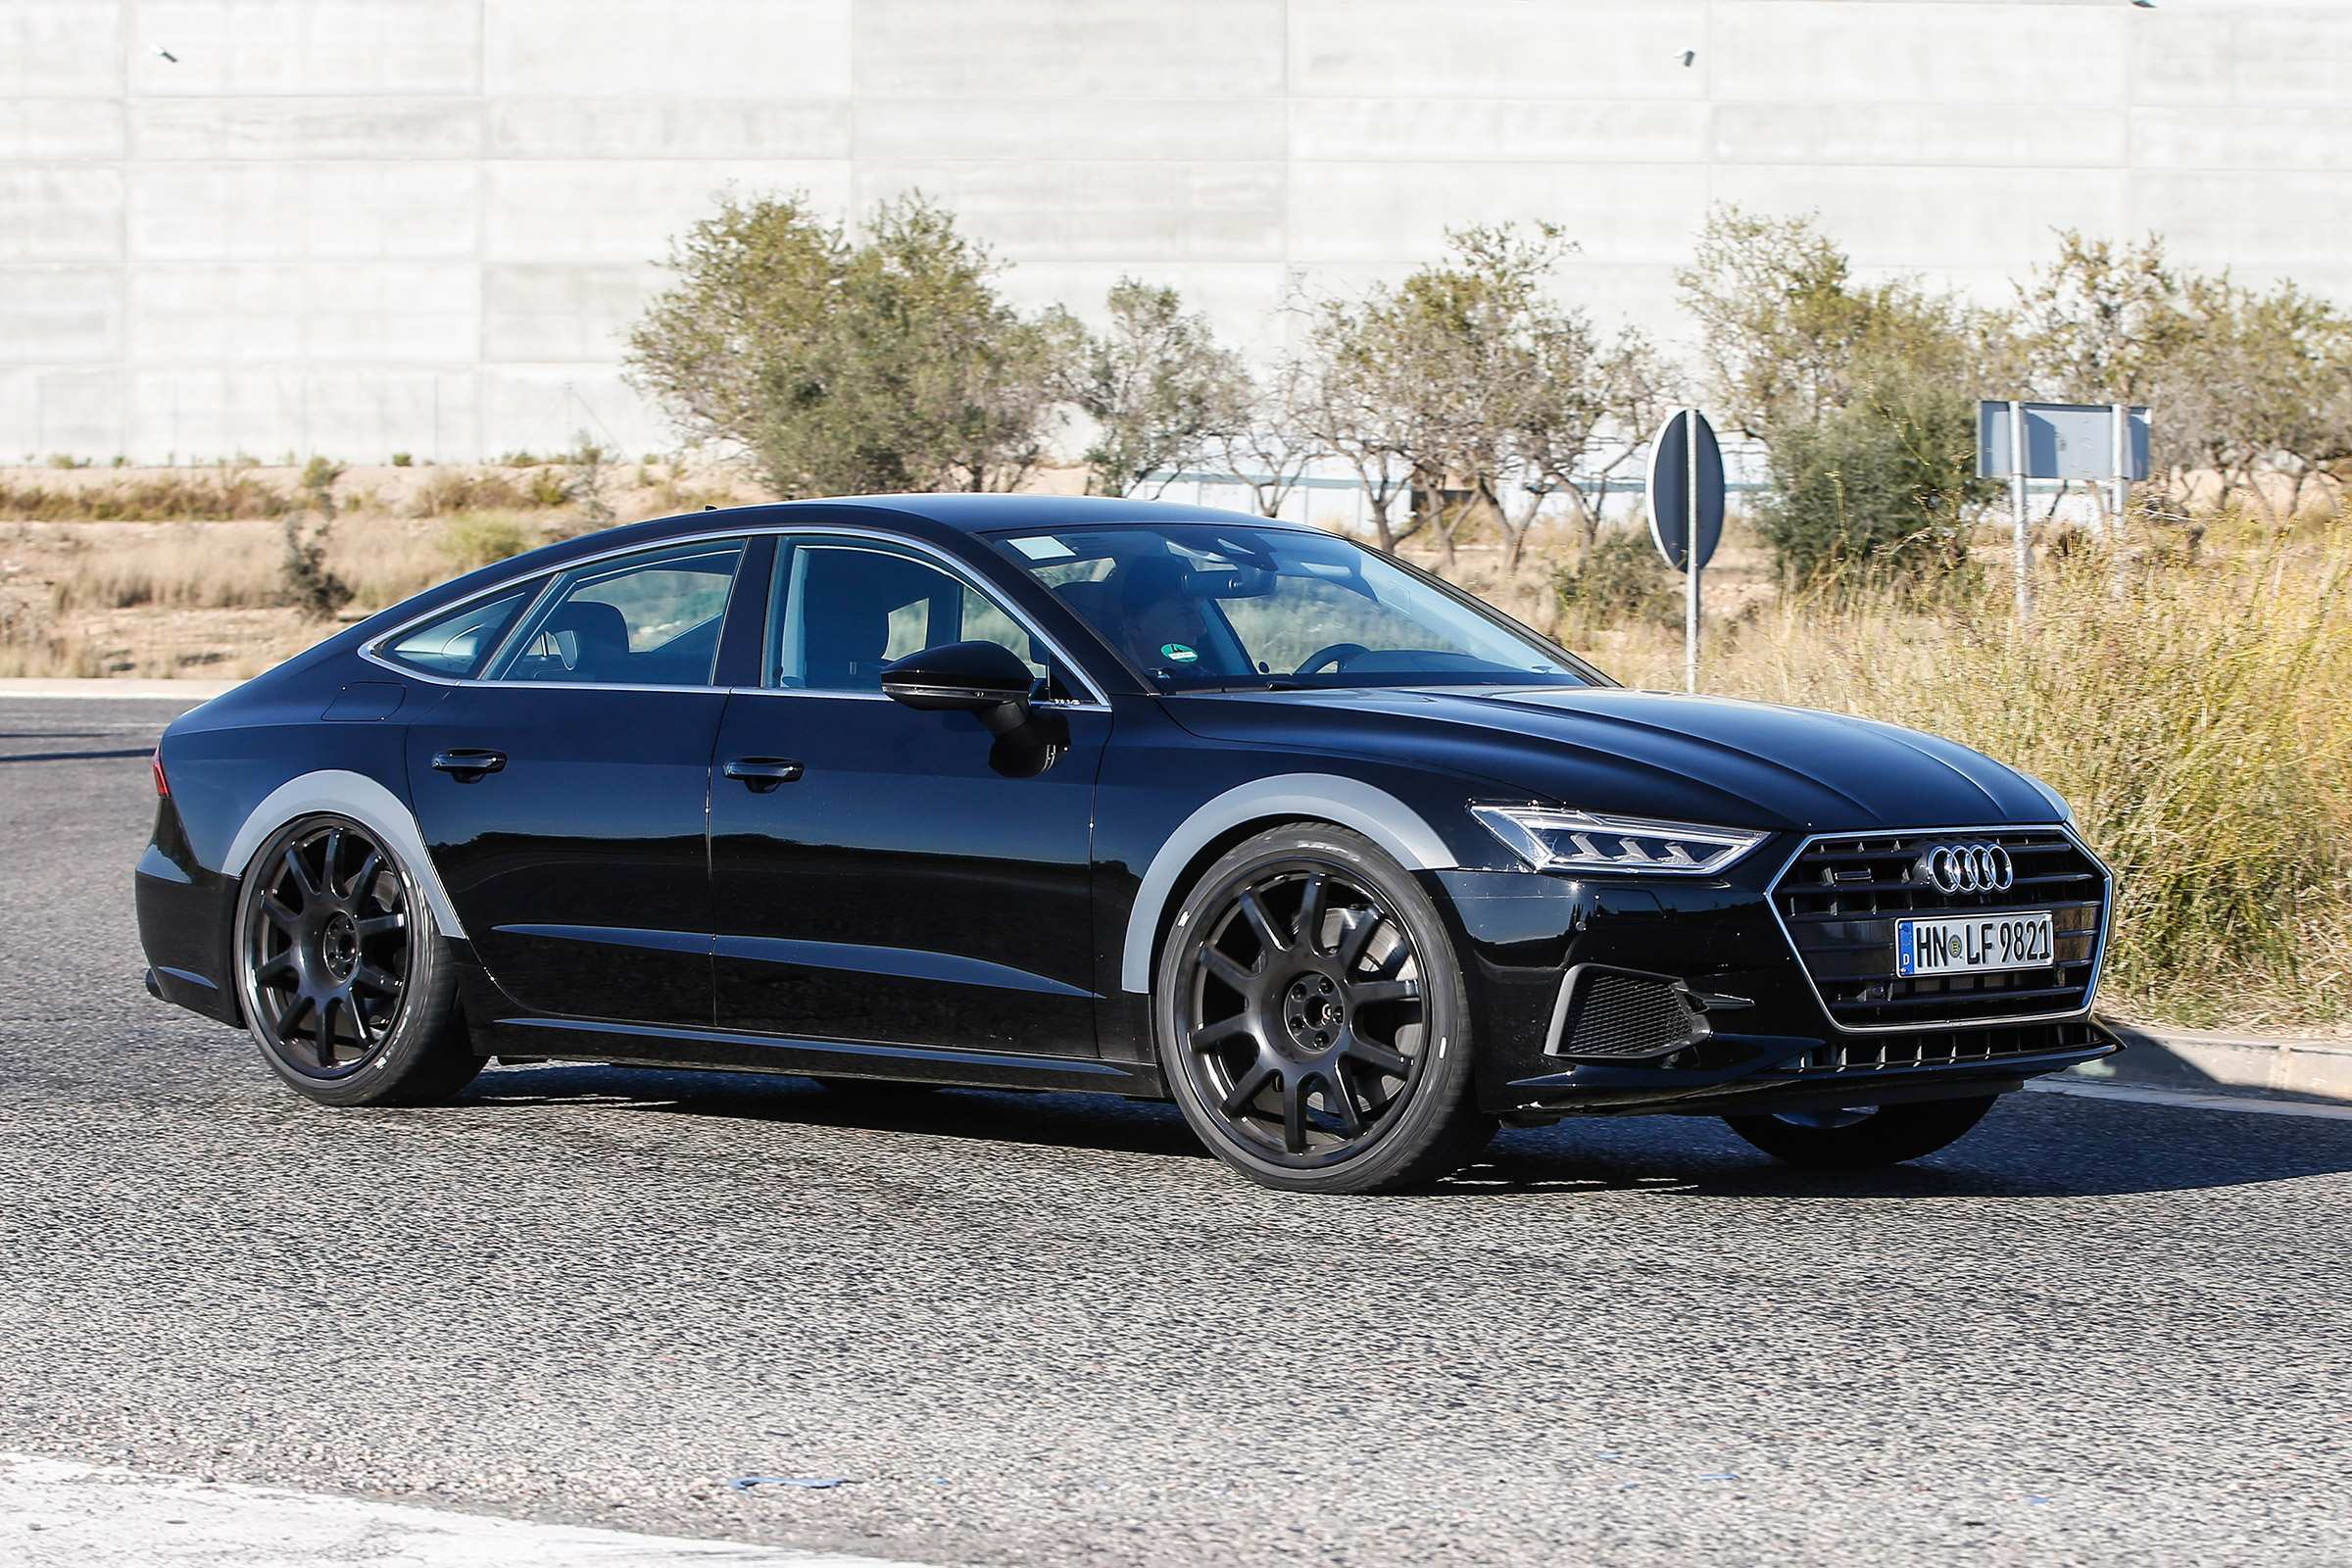 53 All New 2020 Audi Rs7 Specs